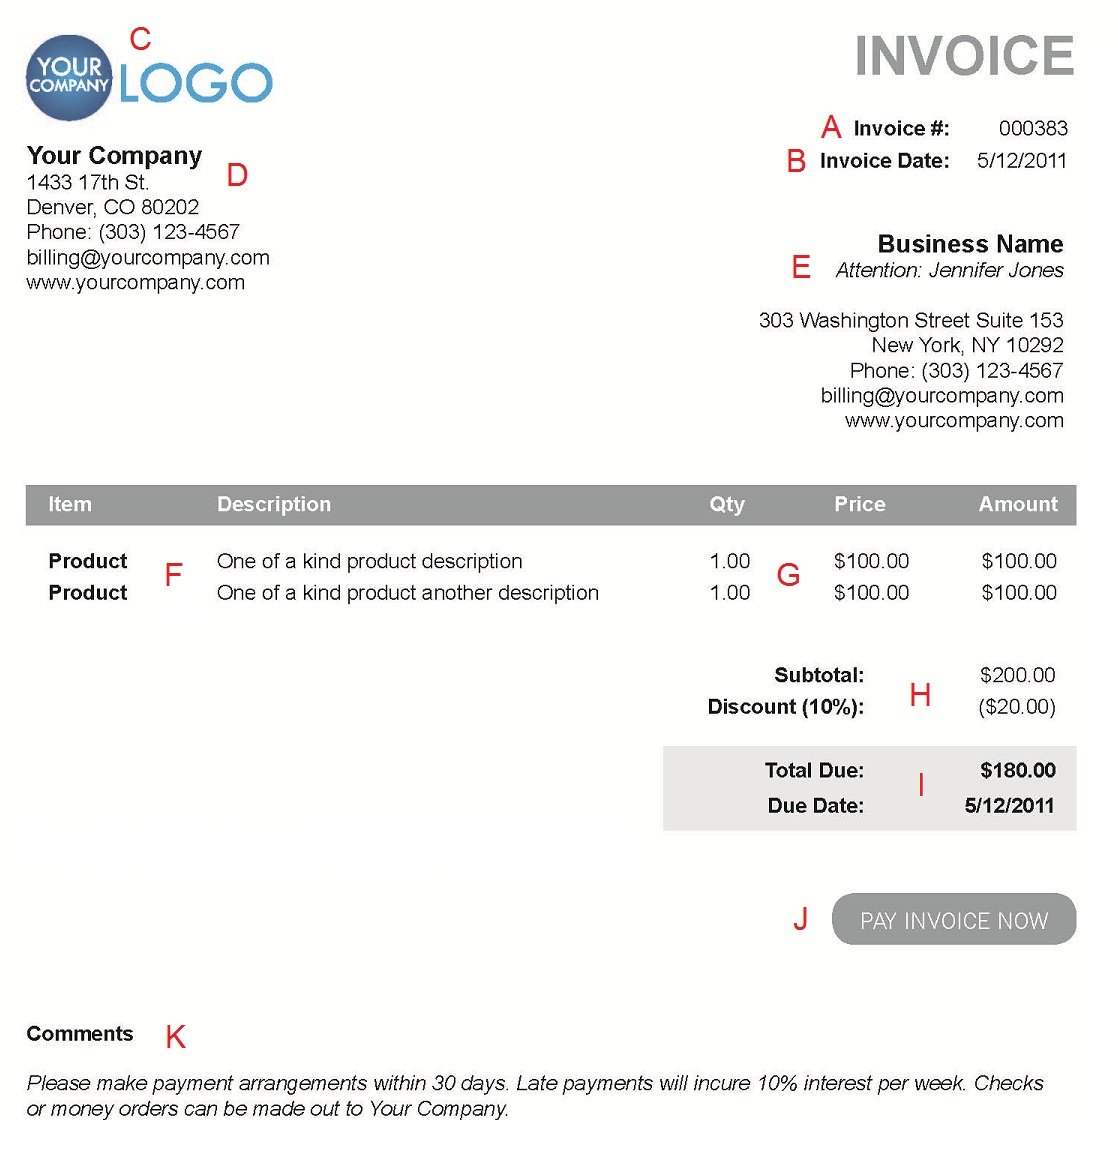 Usdgus  Nice The  Different Sections Of An Electronic Payment Invoice With Licious A  With Agreeable What Is An Invoice On Paypal Also Ipad Invoice App In Addition Free Invoicing Templates And Creat An Invoice As Well As Invoice Finance Company Additionally Pro Forma Invoices From Paysimplecom With Usdgus  Licious The  Different Sections Of An Electronic Payment Invoice With Agreeable A  And Nice What Is An Invoice On Paypal Also Ipad Invoice App In Addition Free Invoicing Templates From Paysimplecom